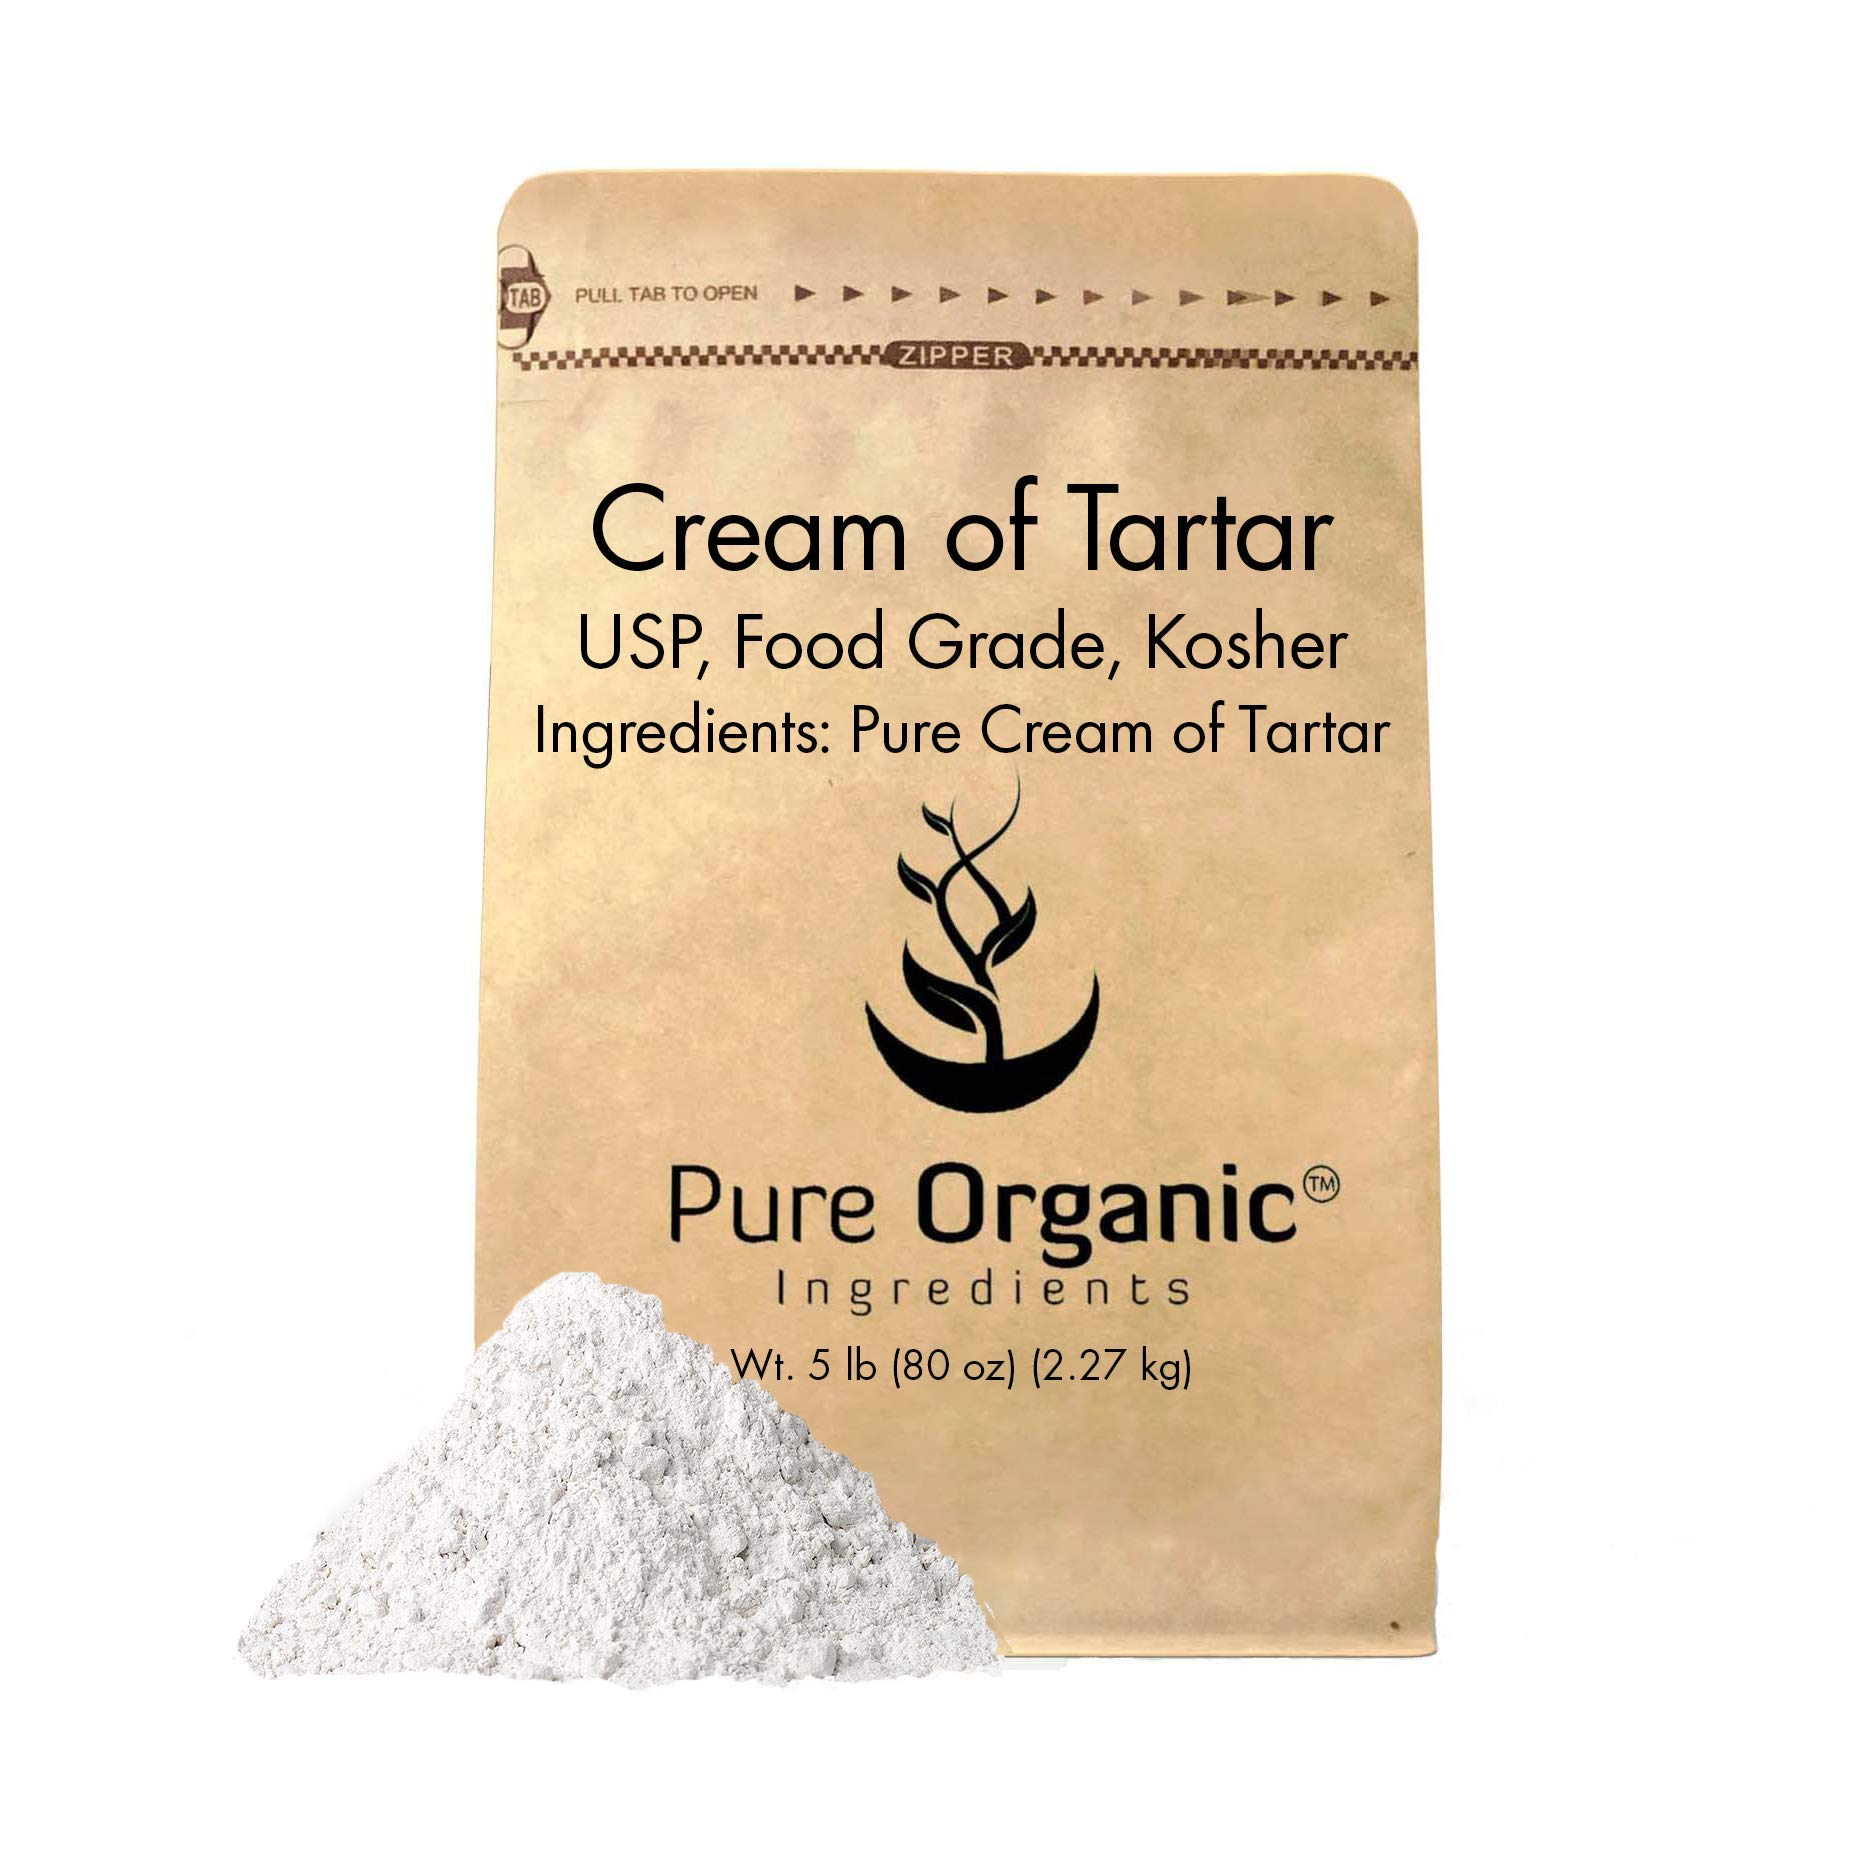 Cream of Tartar (5 lb.) by Pure Organic Ingredients, Highest Purity, Baking Additive, Non-GMO, Kosher, Gluten-Free, All-Natural, DIY Bath Bombs, Mess Free